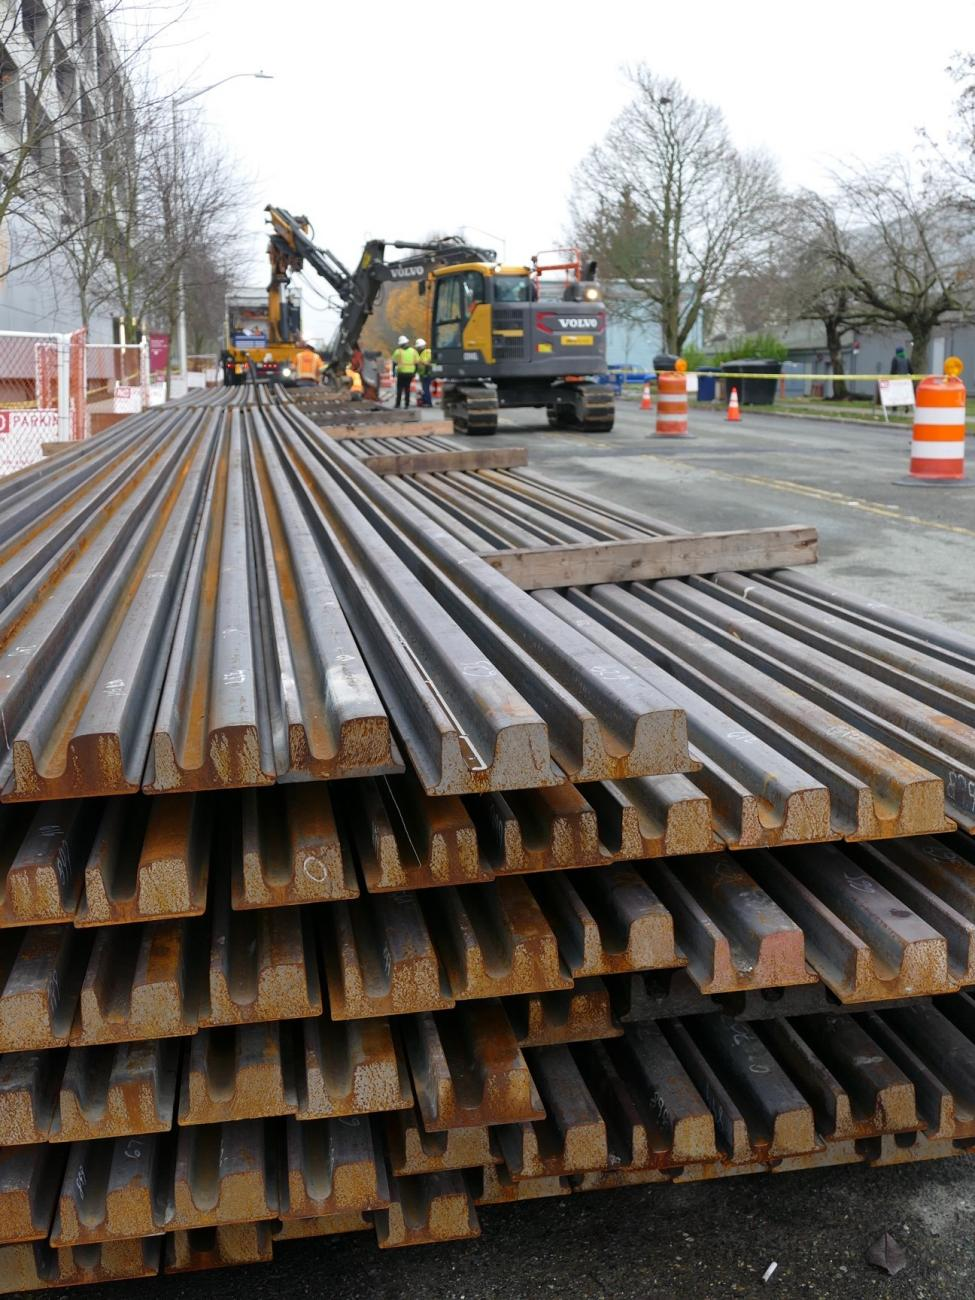 Stacks of rail are pictured, with construction equipment in the background.